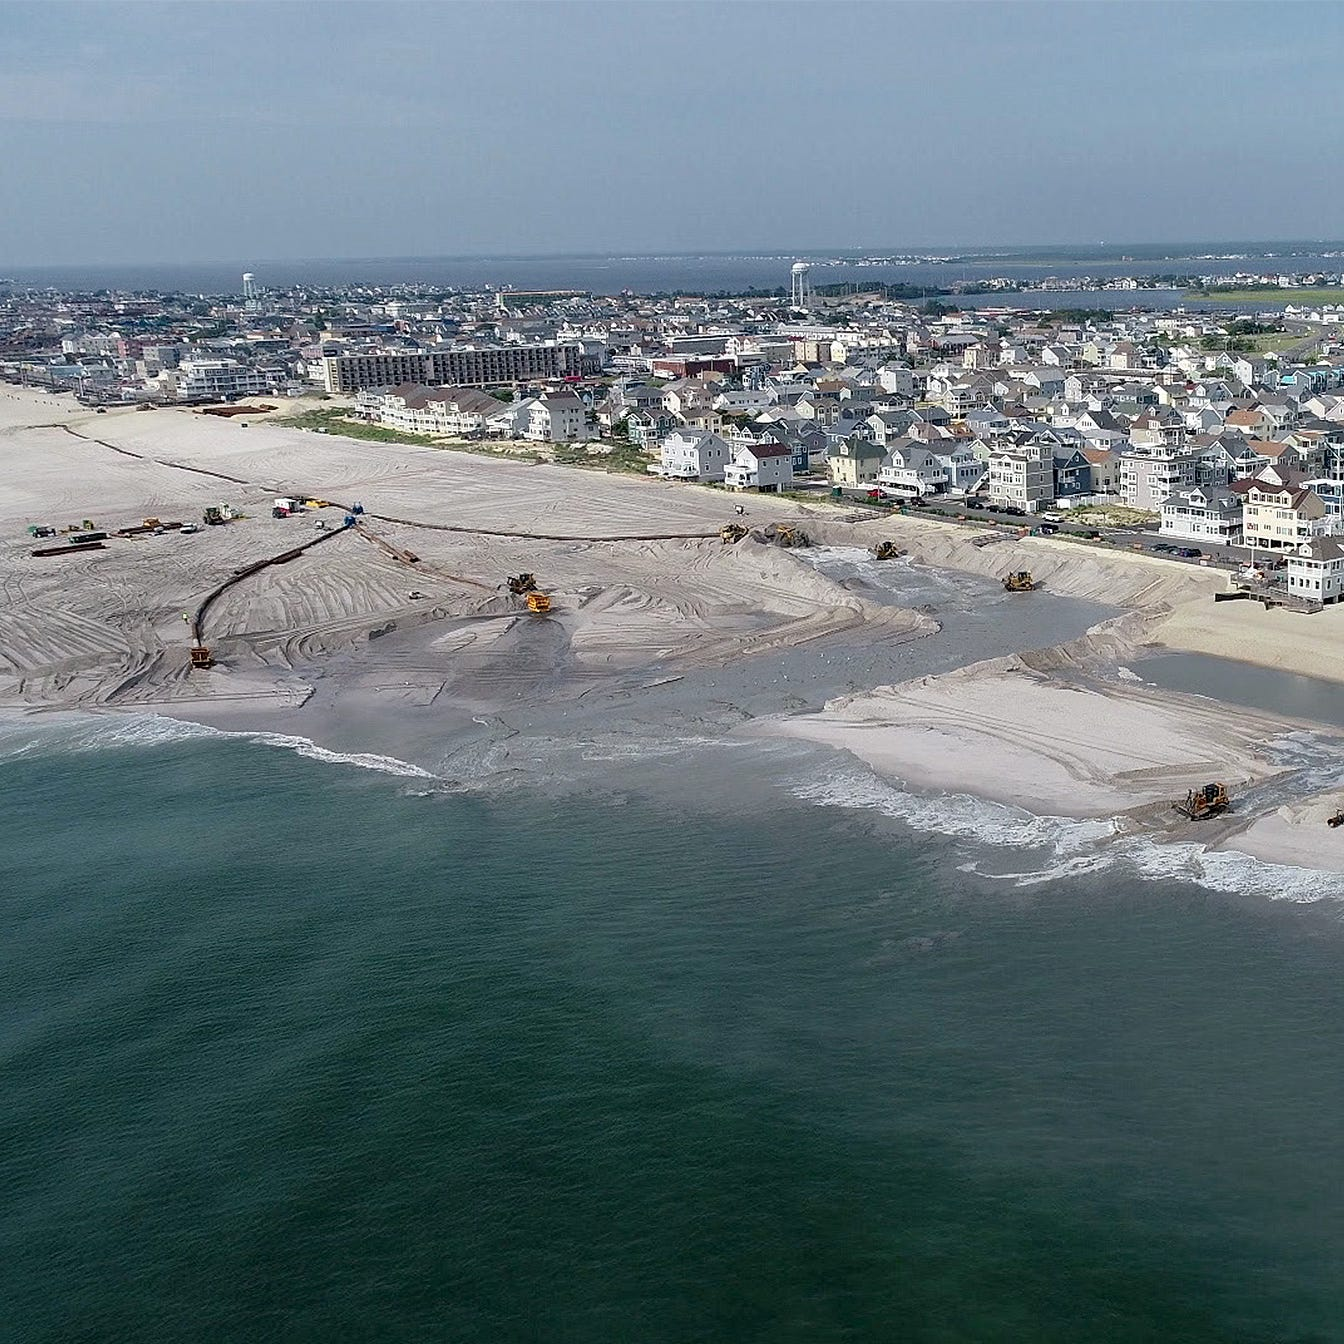 Will damage awards threaten beach replenishment? Donato